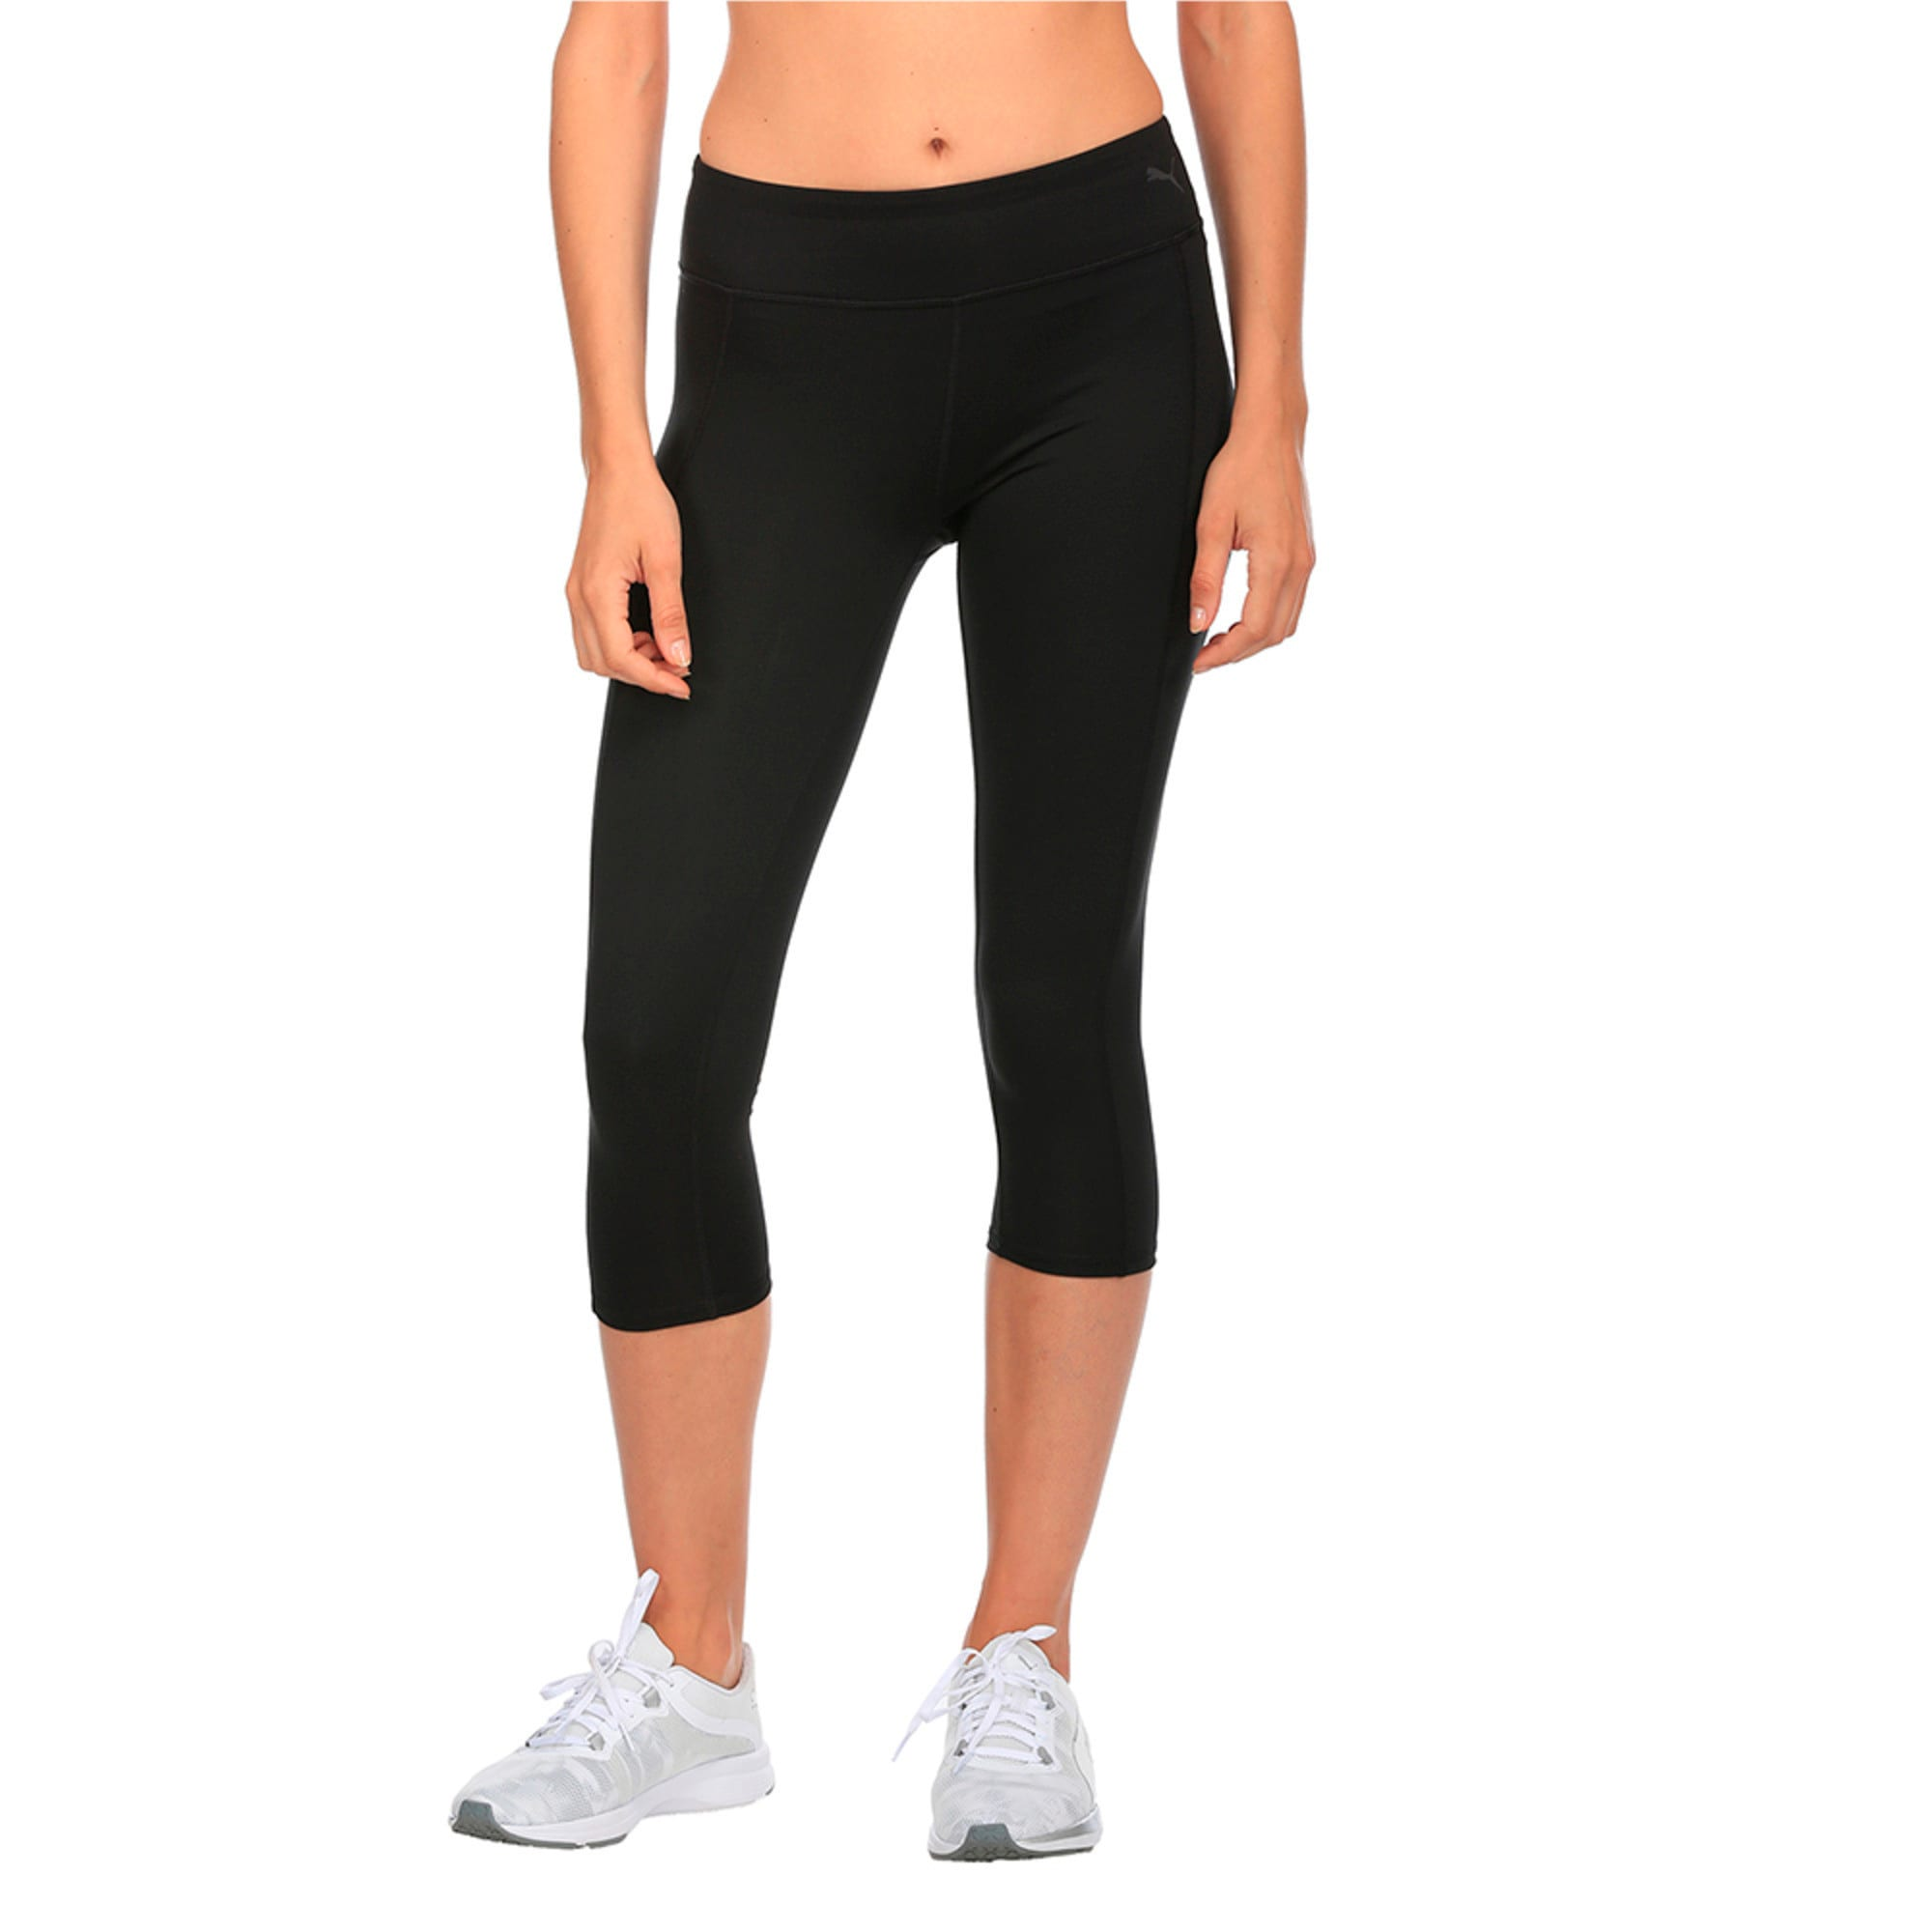 Thumbnail 4 of Essential 3 4 Tight, Puma Black, medium-IND